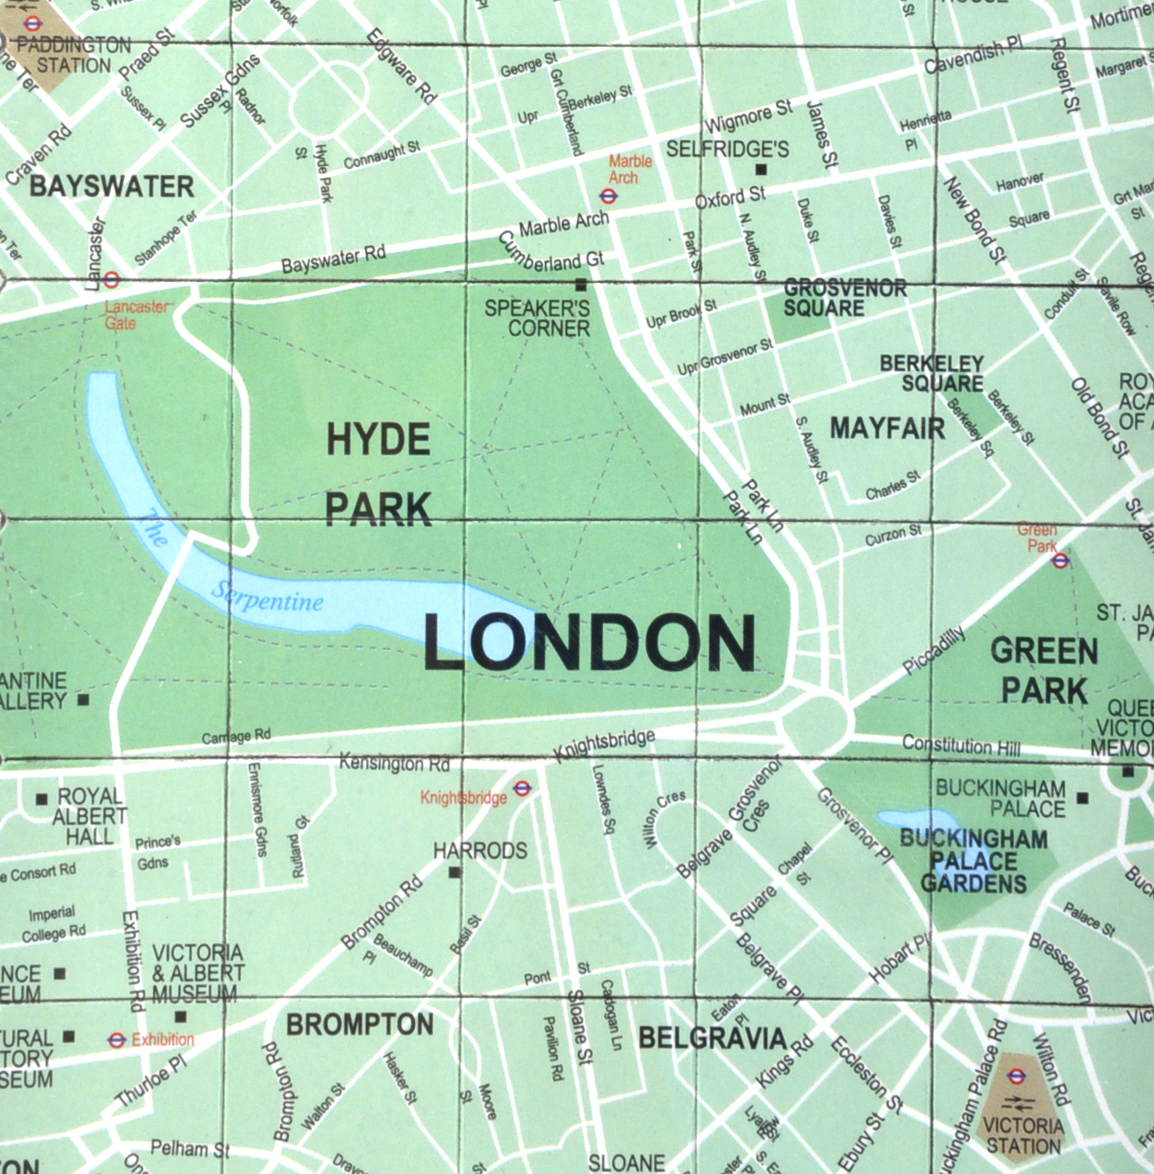 london city map fridge magnet puzzle learn the city map knowledge with fridge magnets pink. Black Bedroom Furniture Sets. Home Design Ideas